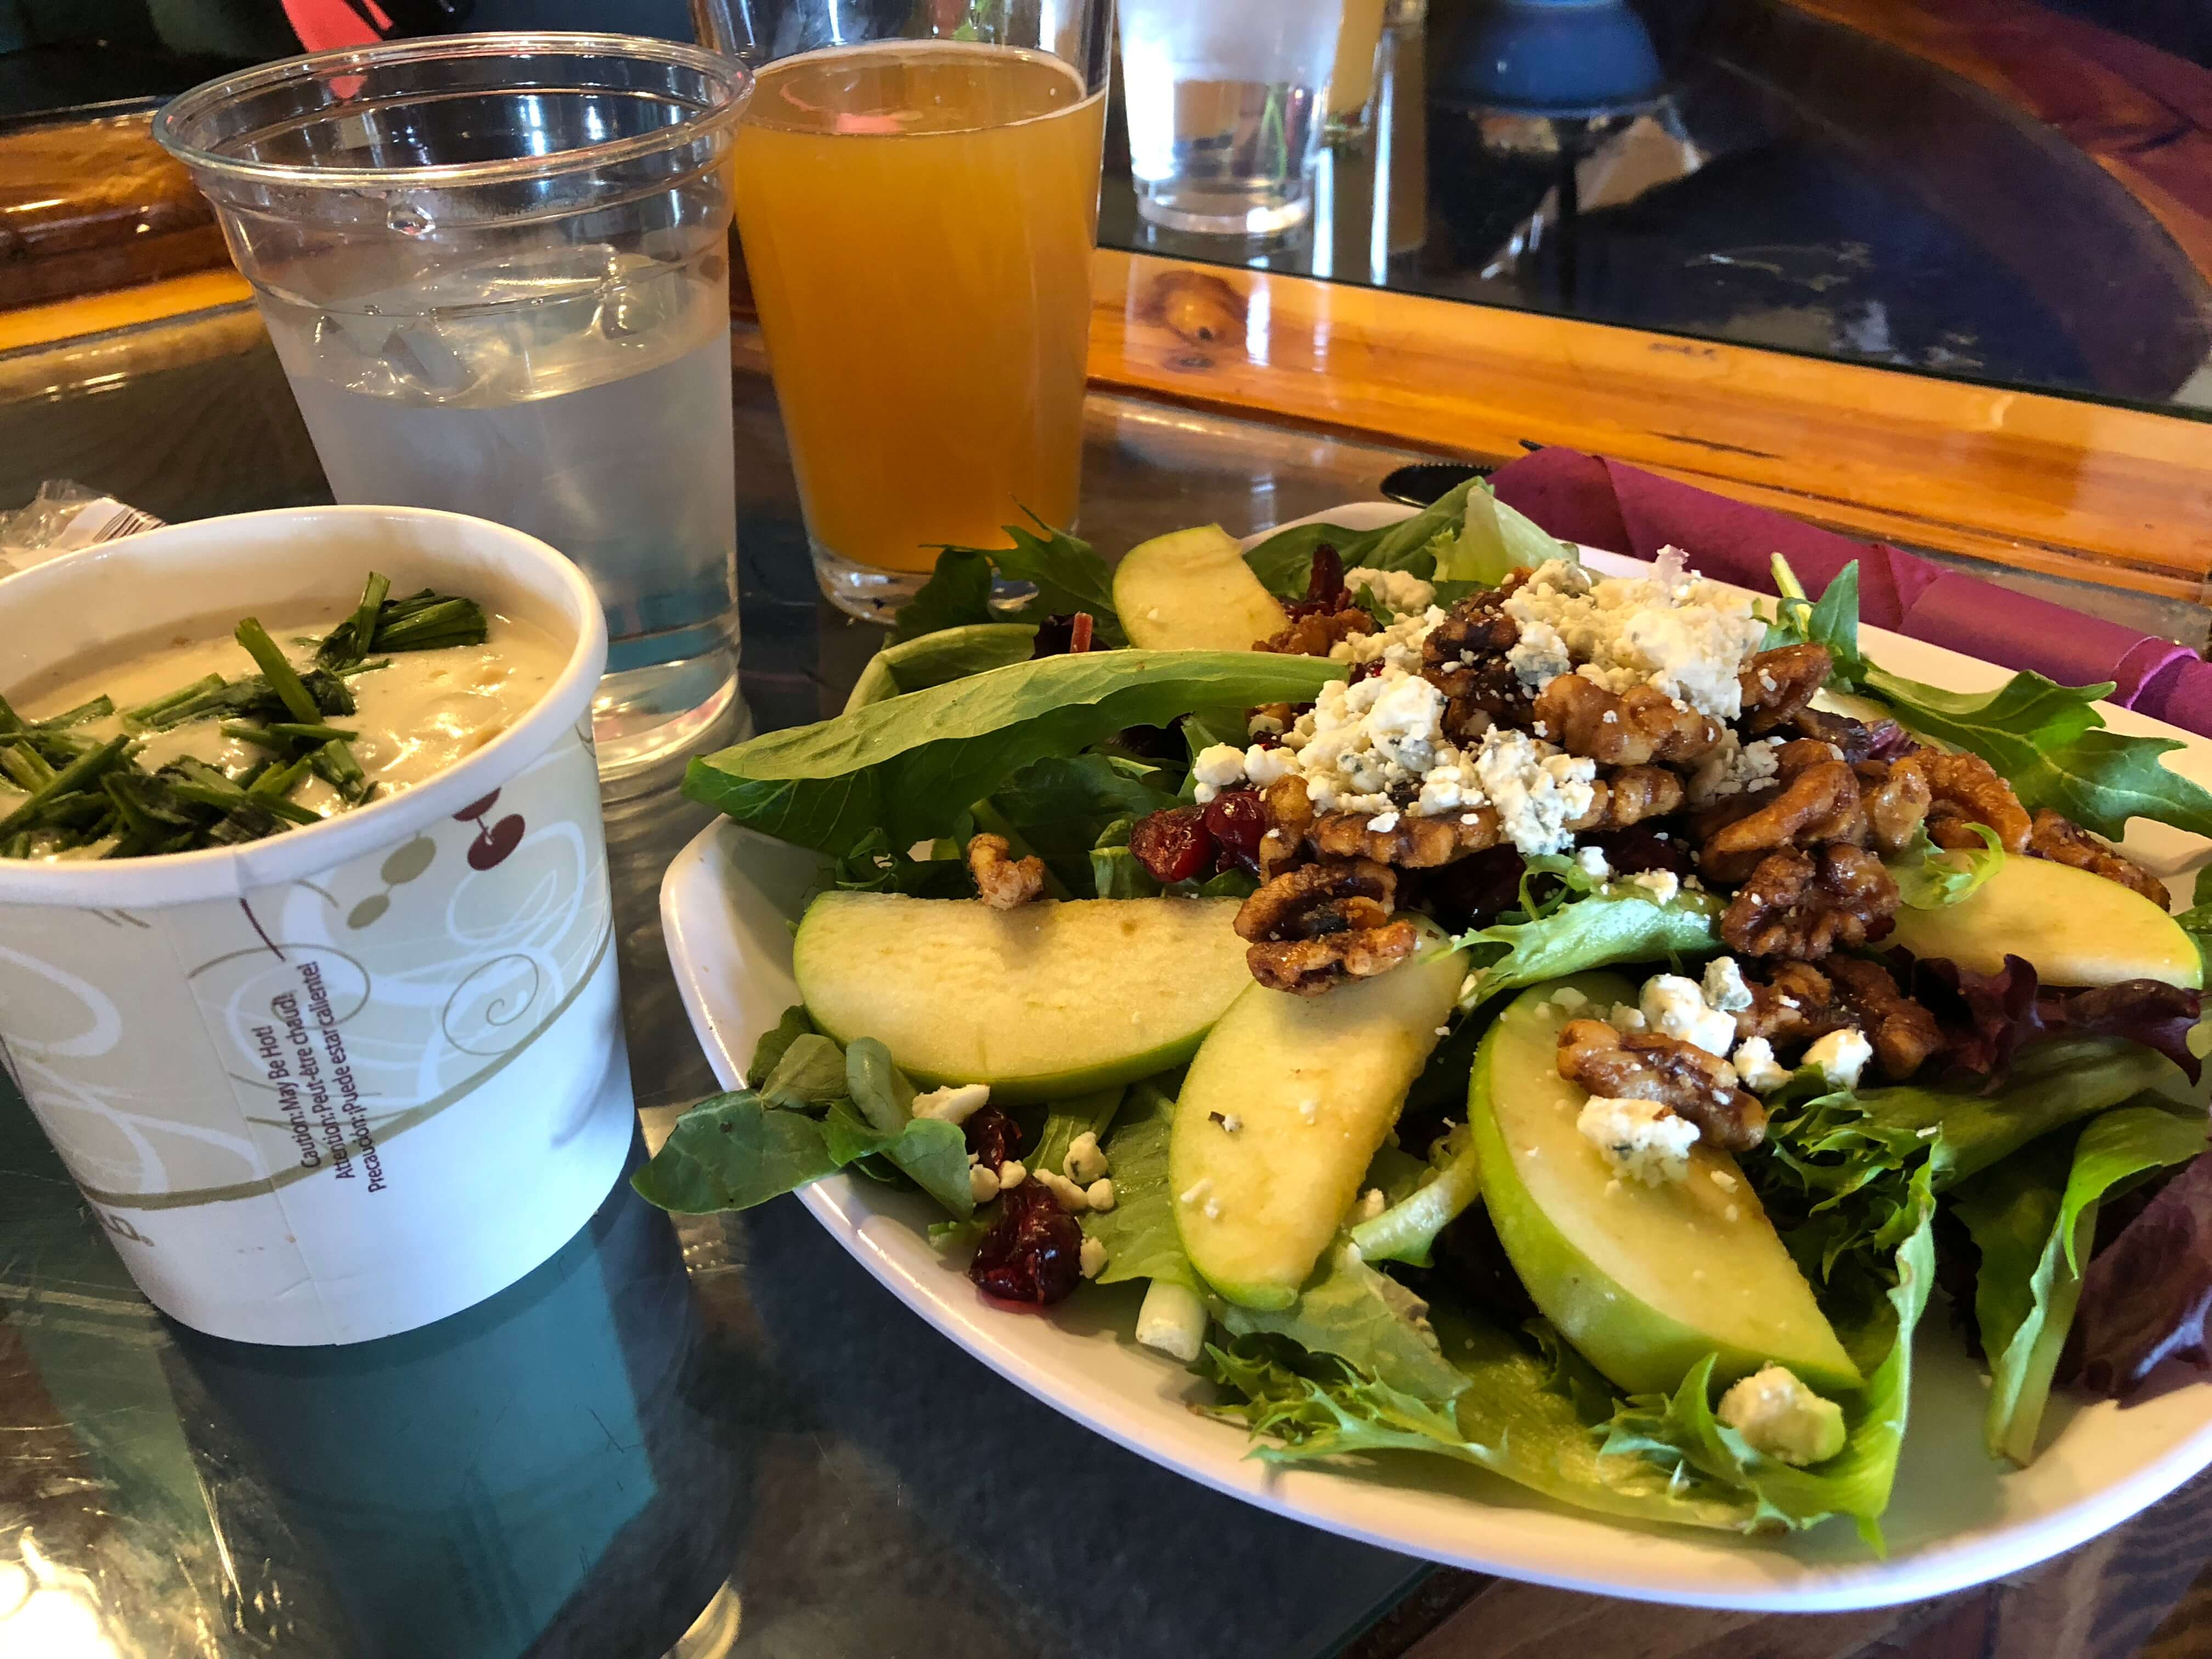 learning to ski as an adult at mount snow salad and beer